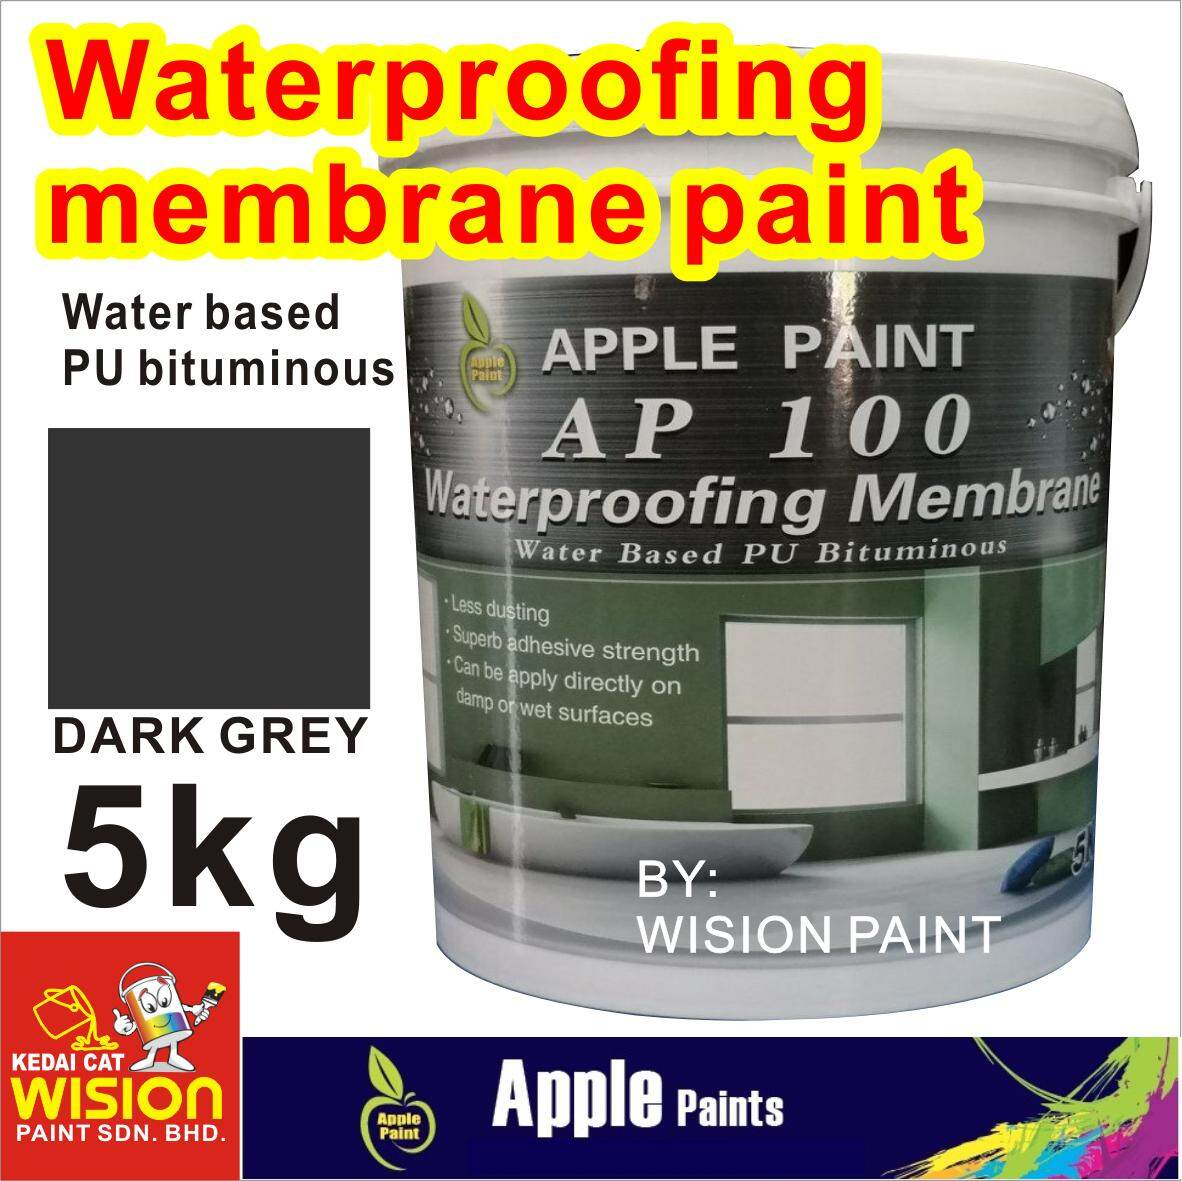 AP 100 WATERPROOFING MEMBRANE ( 5KG ) WATER BASED PU BITUMINOUS LESS DUSTING SUPERB ADHESIVE STRENGTH CAN BE APPLY DIRECTLY ON DAMP OR WET SURFACES APPLE PAINT